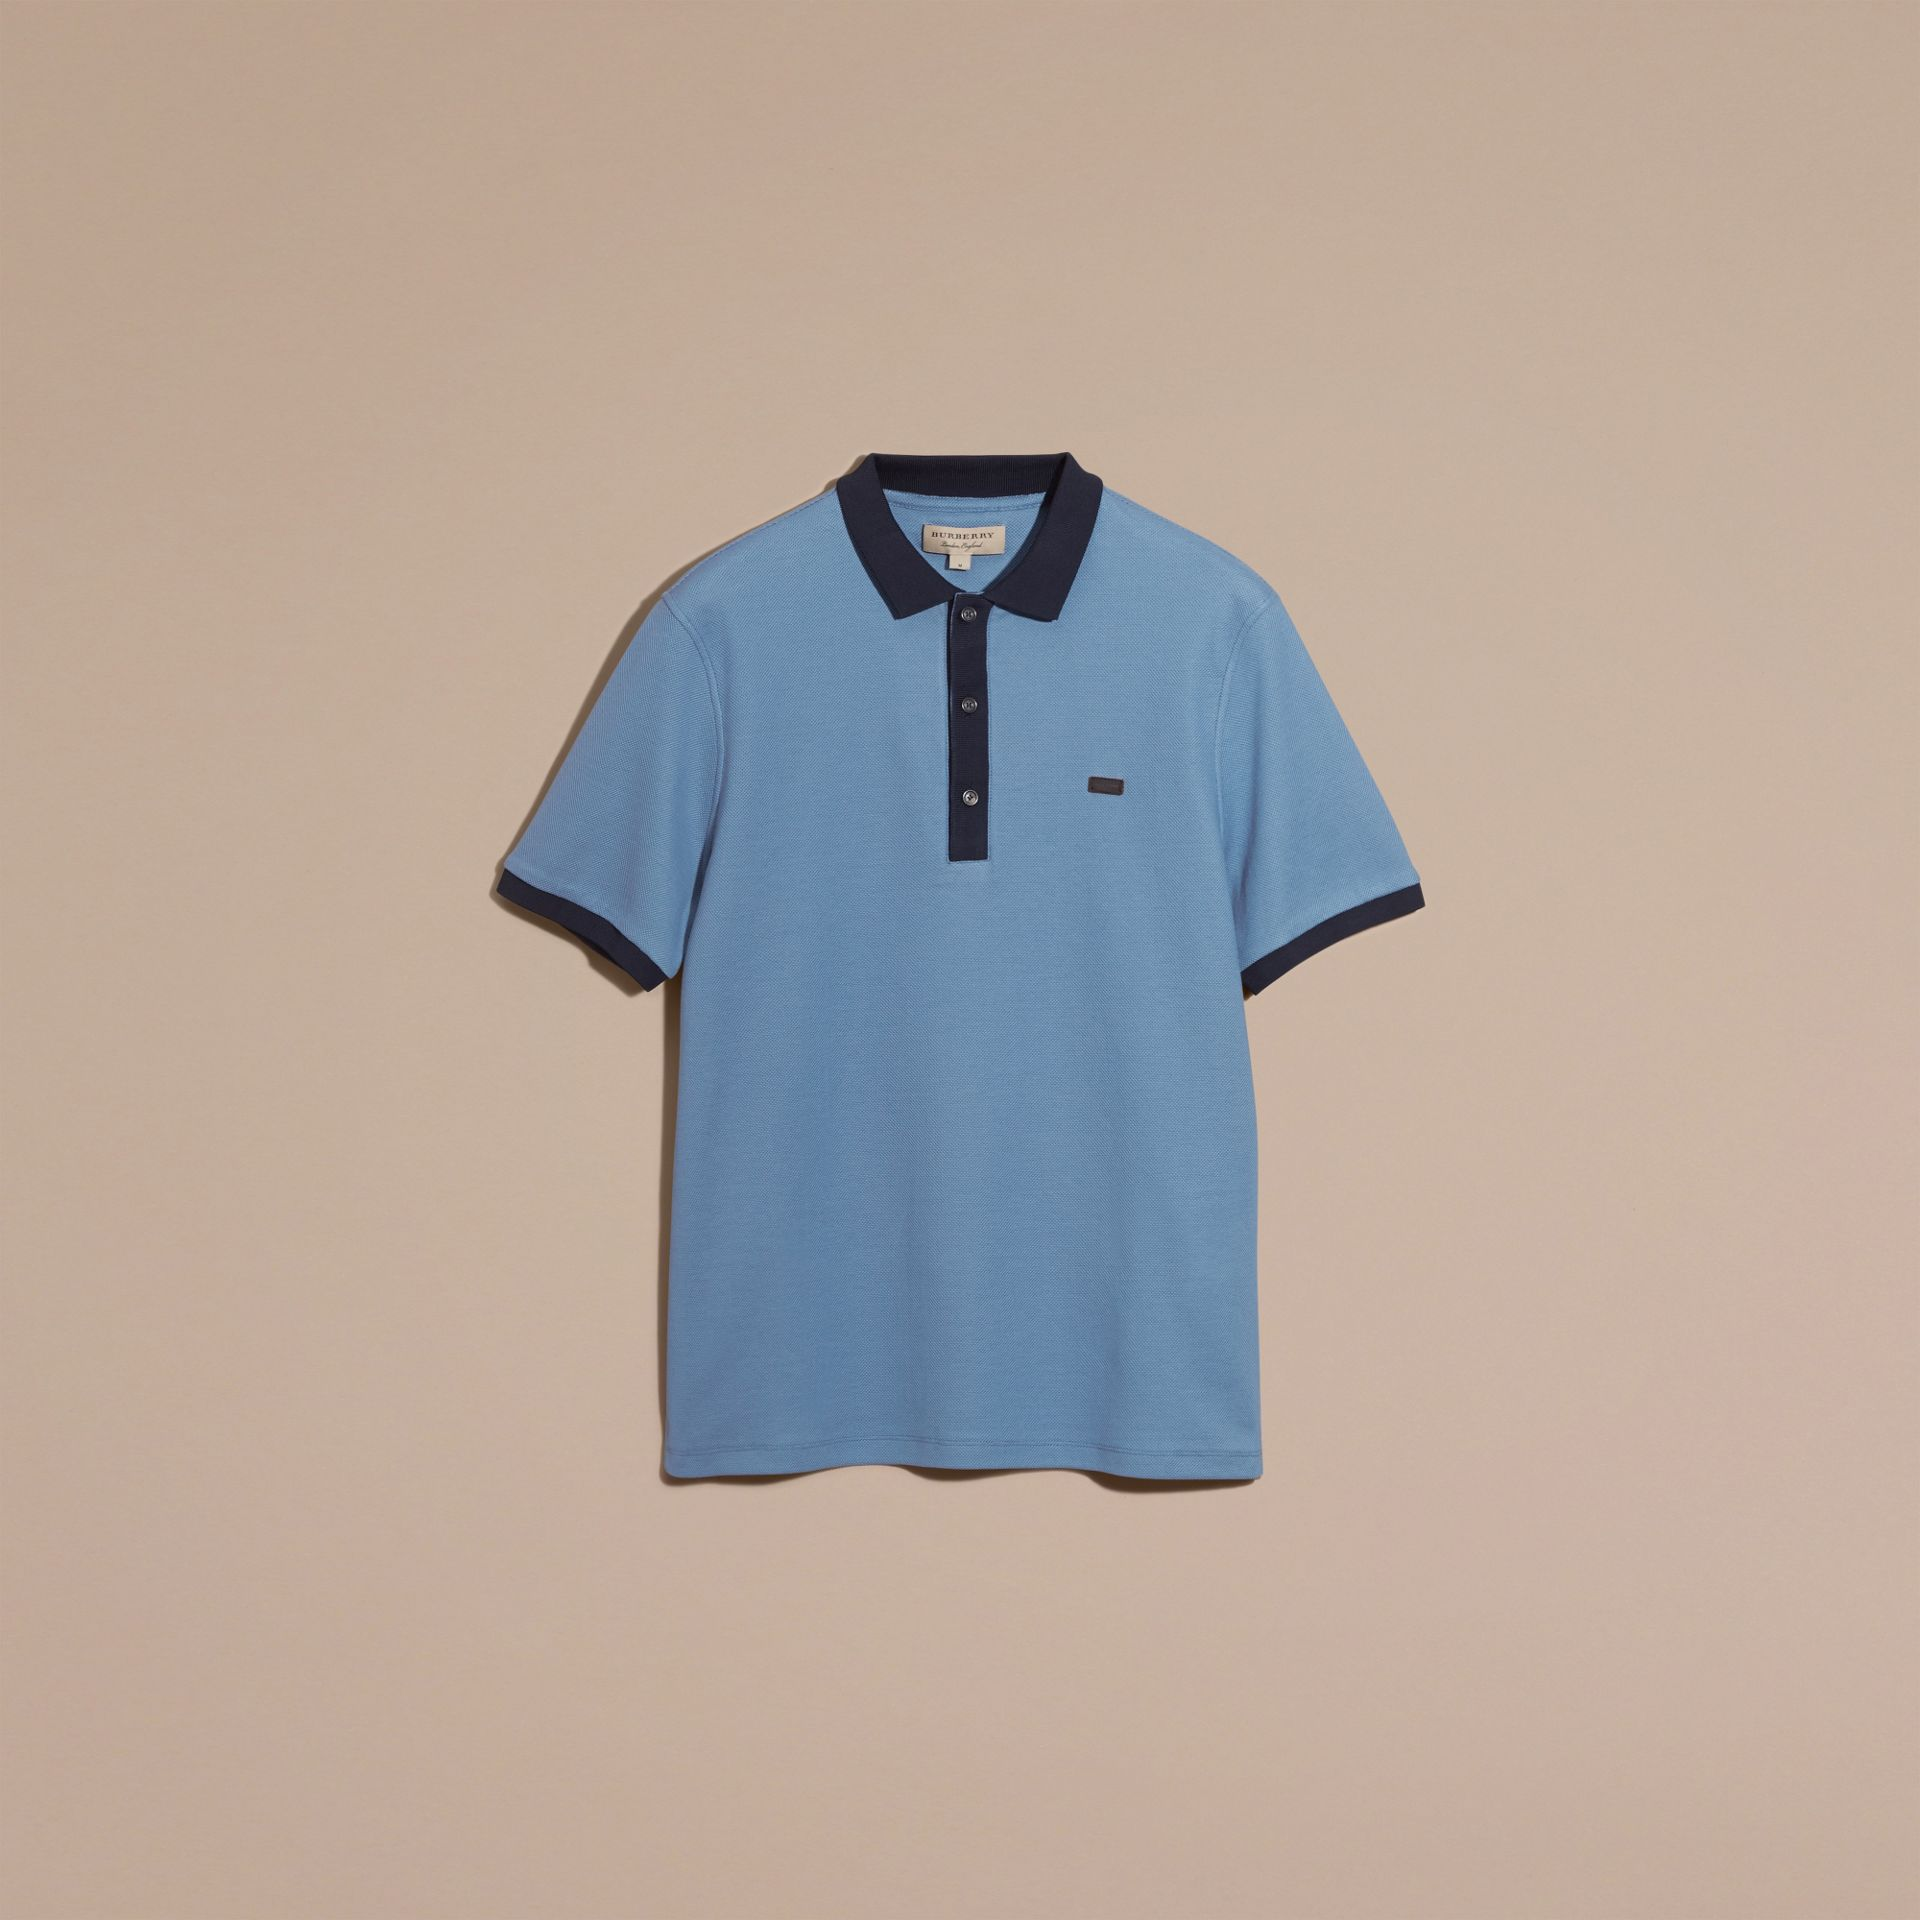 Pale cornflower blue/bright navy Mercerised Cotton Piqué Polo Shirt Pale Cornflower Blue/bright Navy - gallery image 2